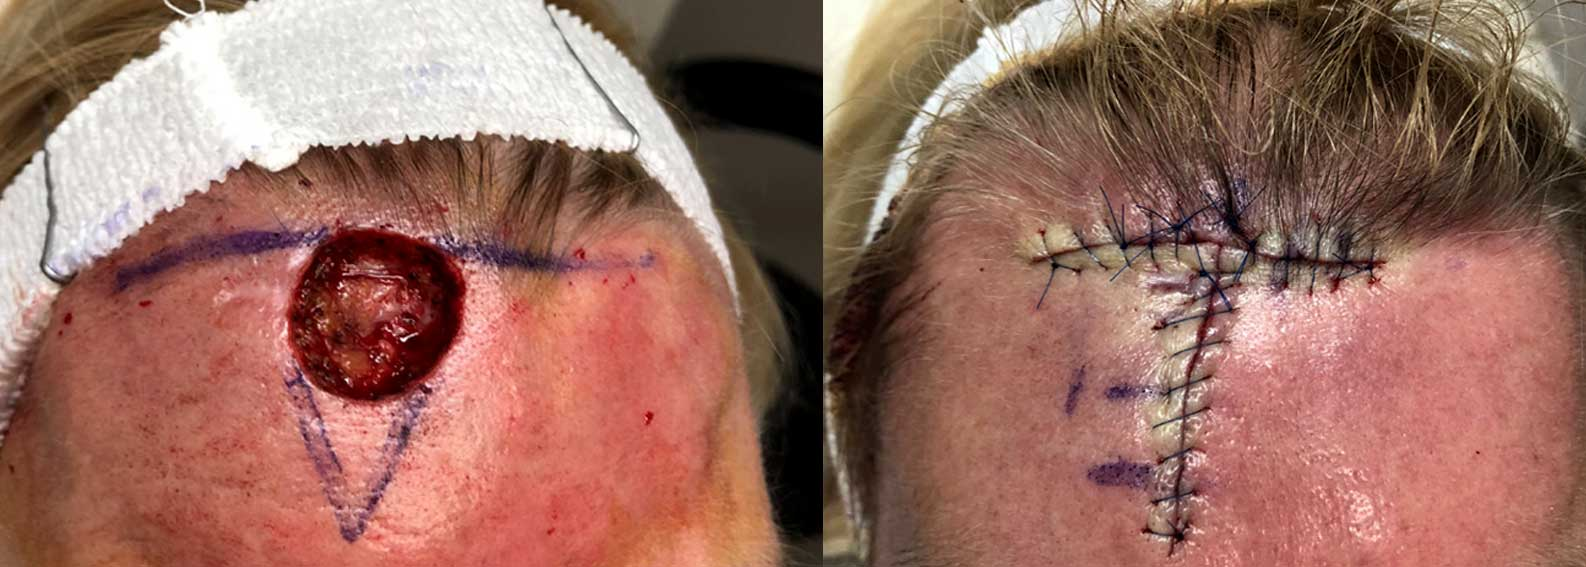 Before and after of Mohs skin cancer surgery on a woman's forehead.